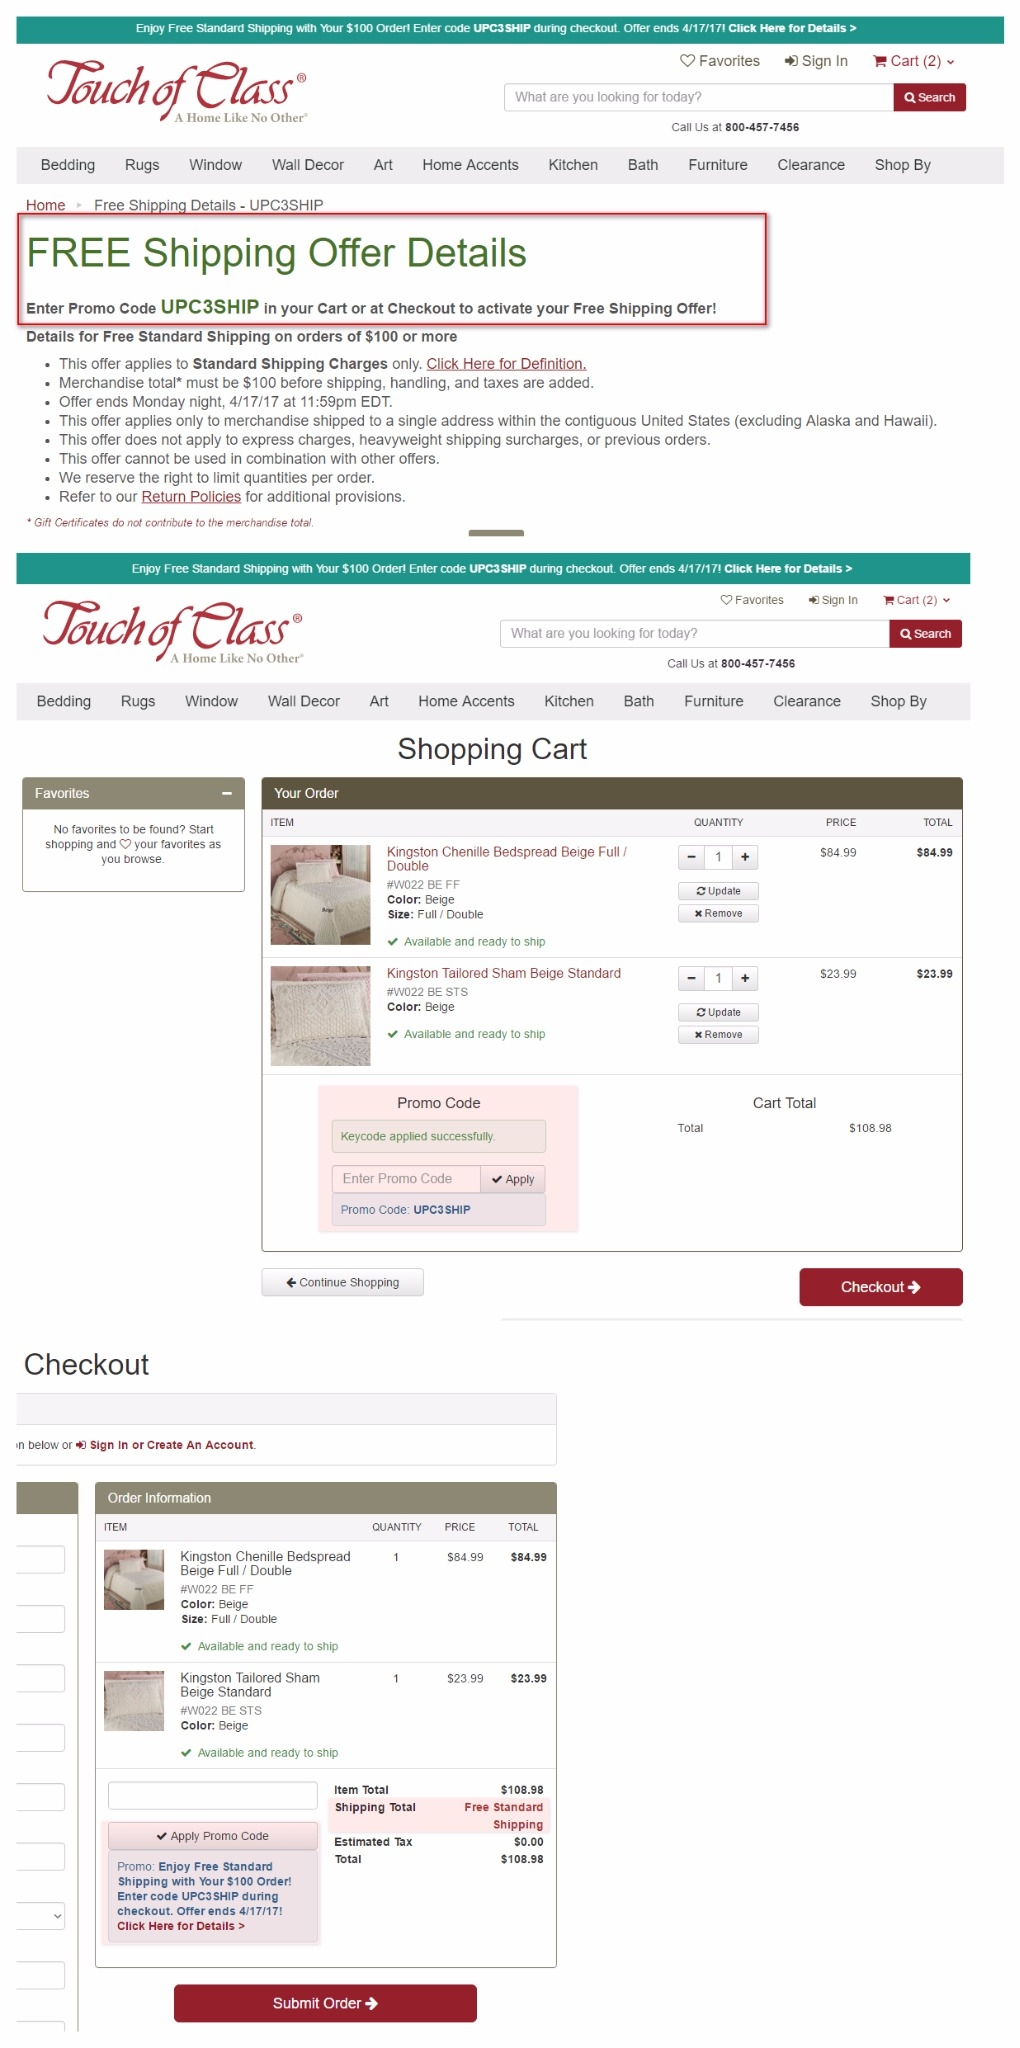 Touch of class coupon code